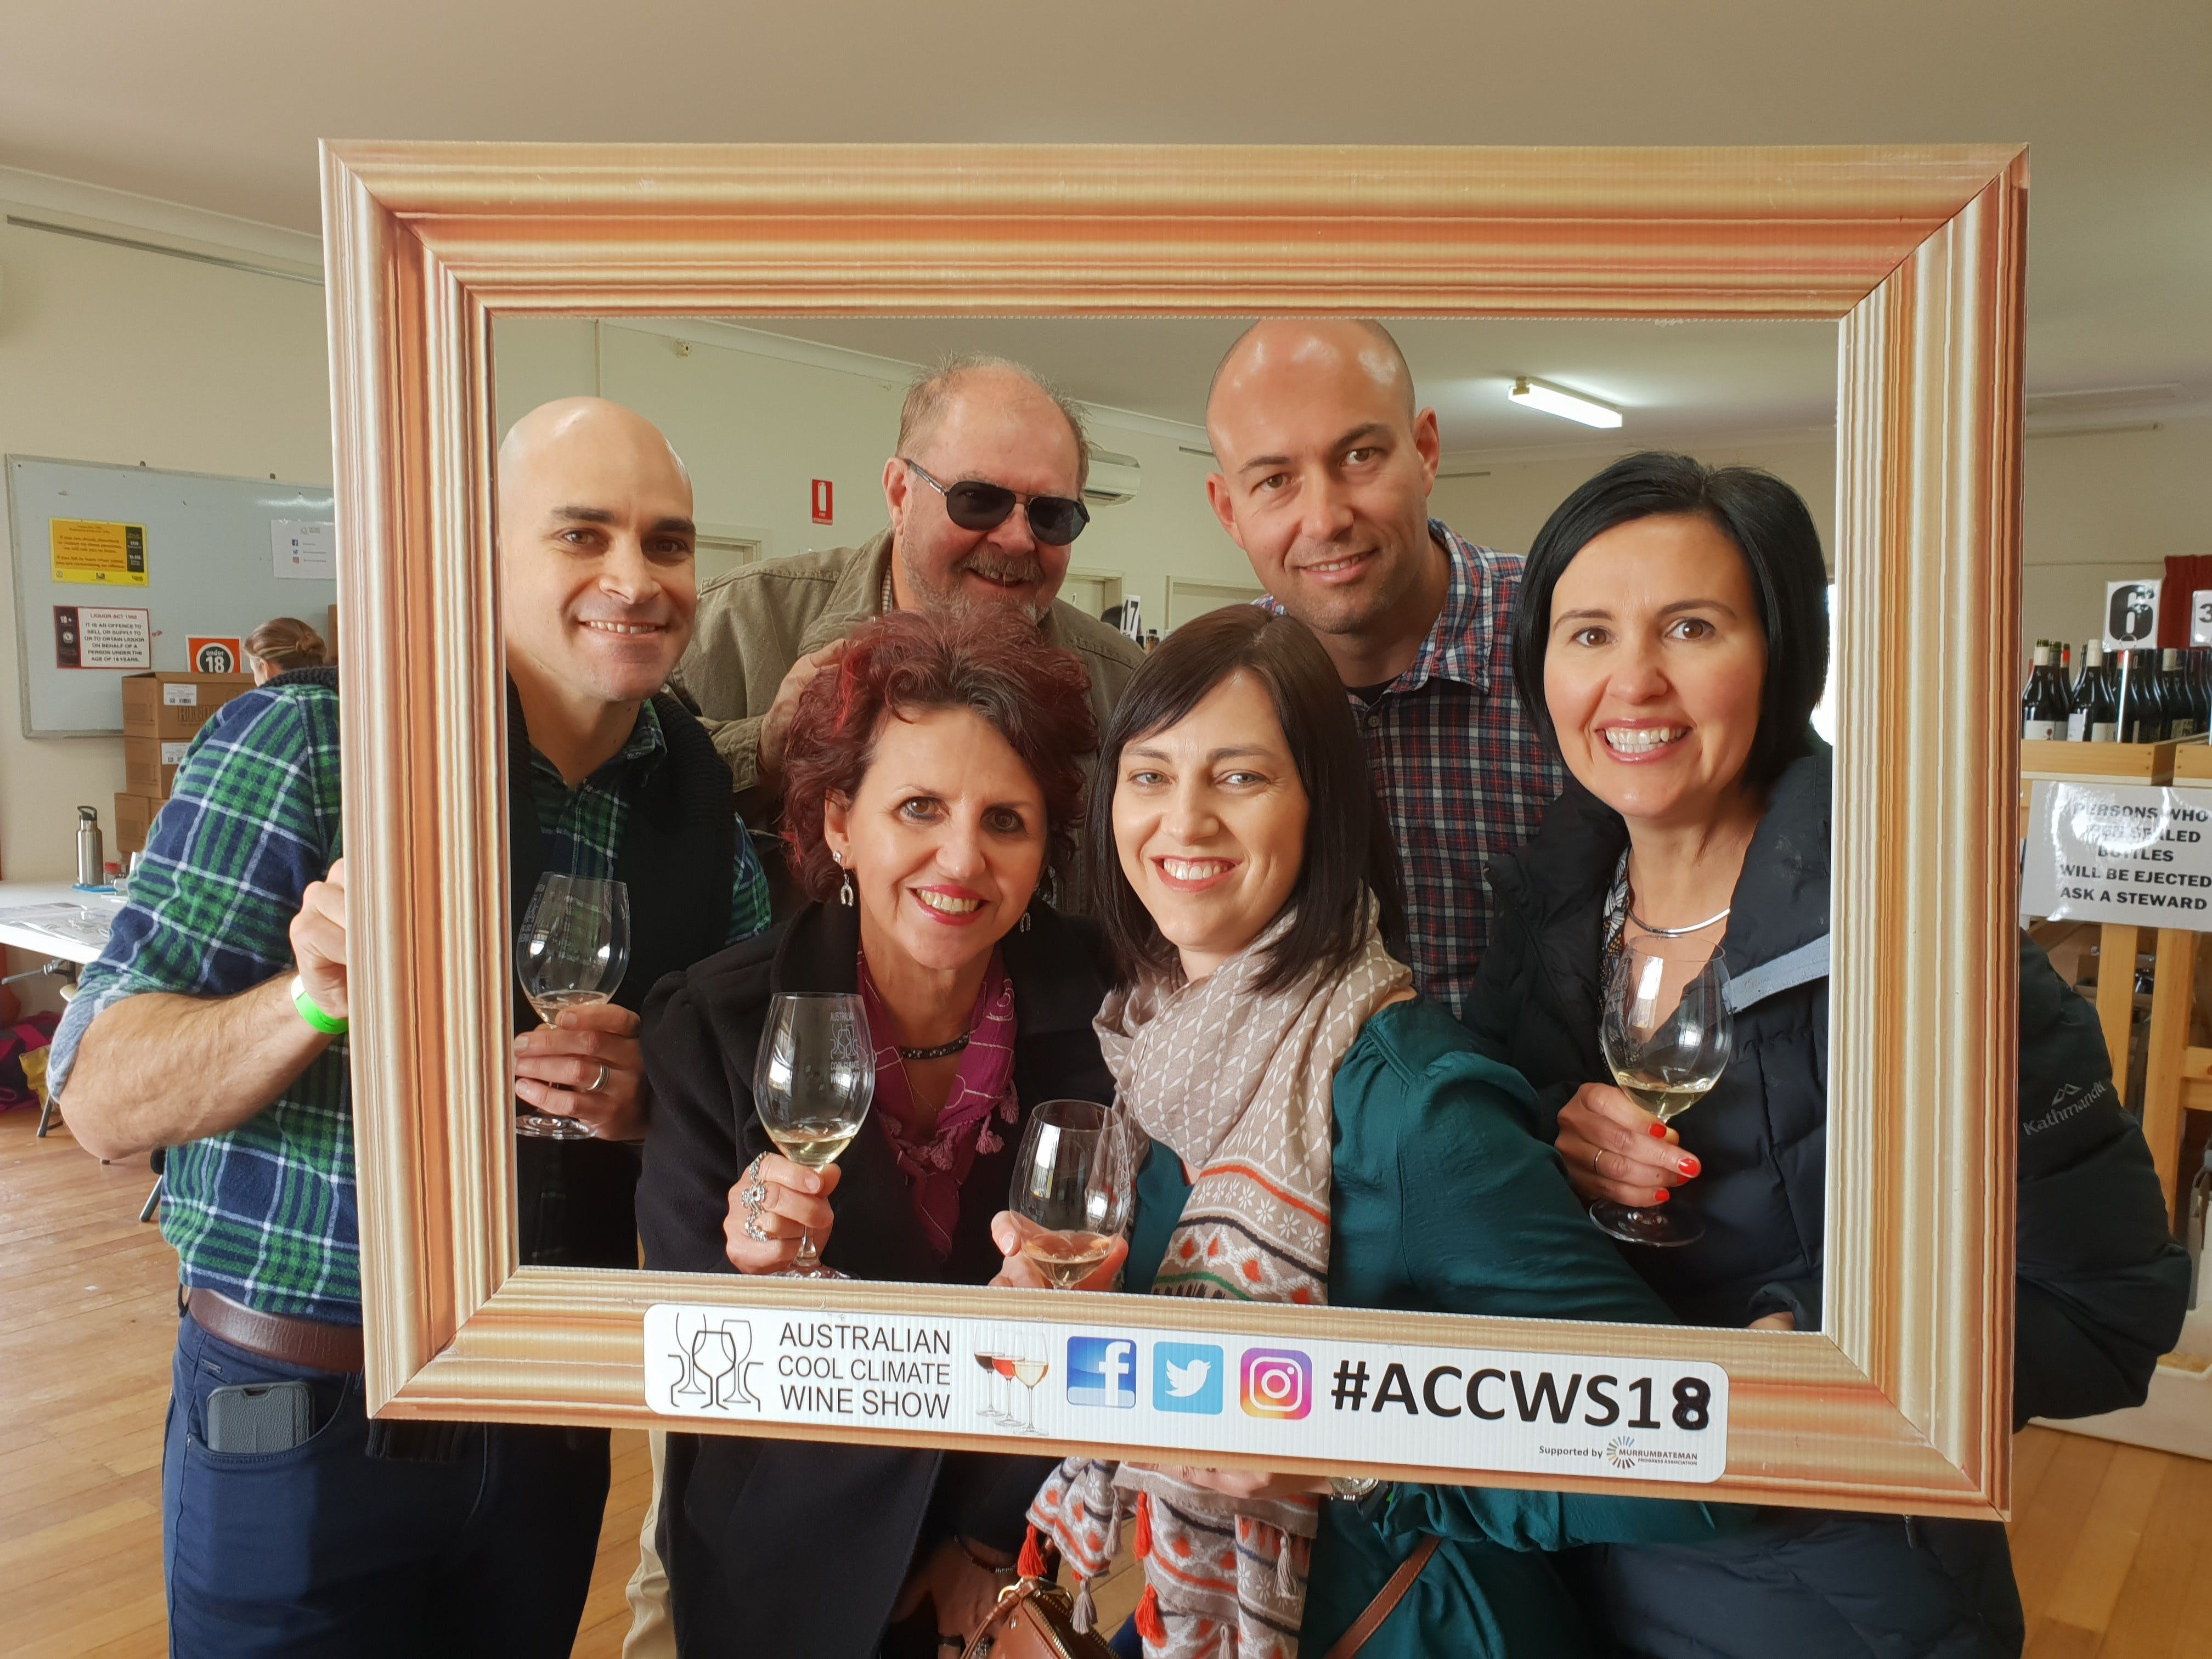 Australian Cool Climate Wine Show - Foster Accommodation